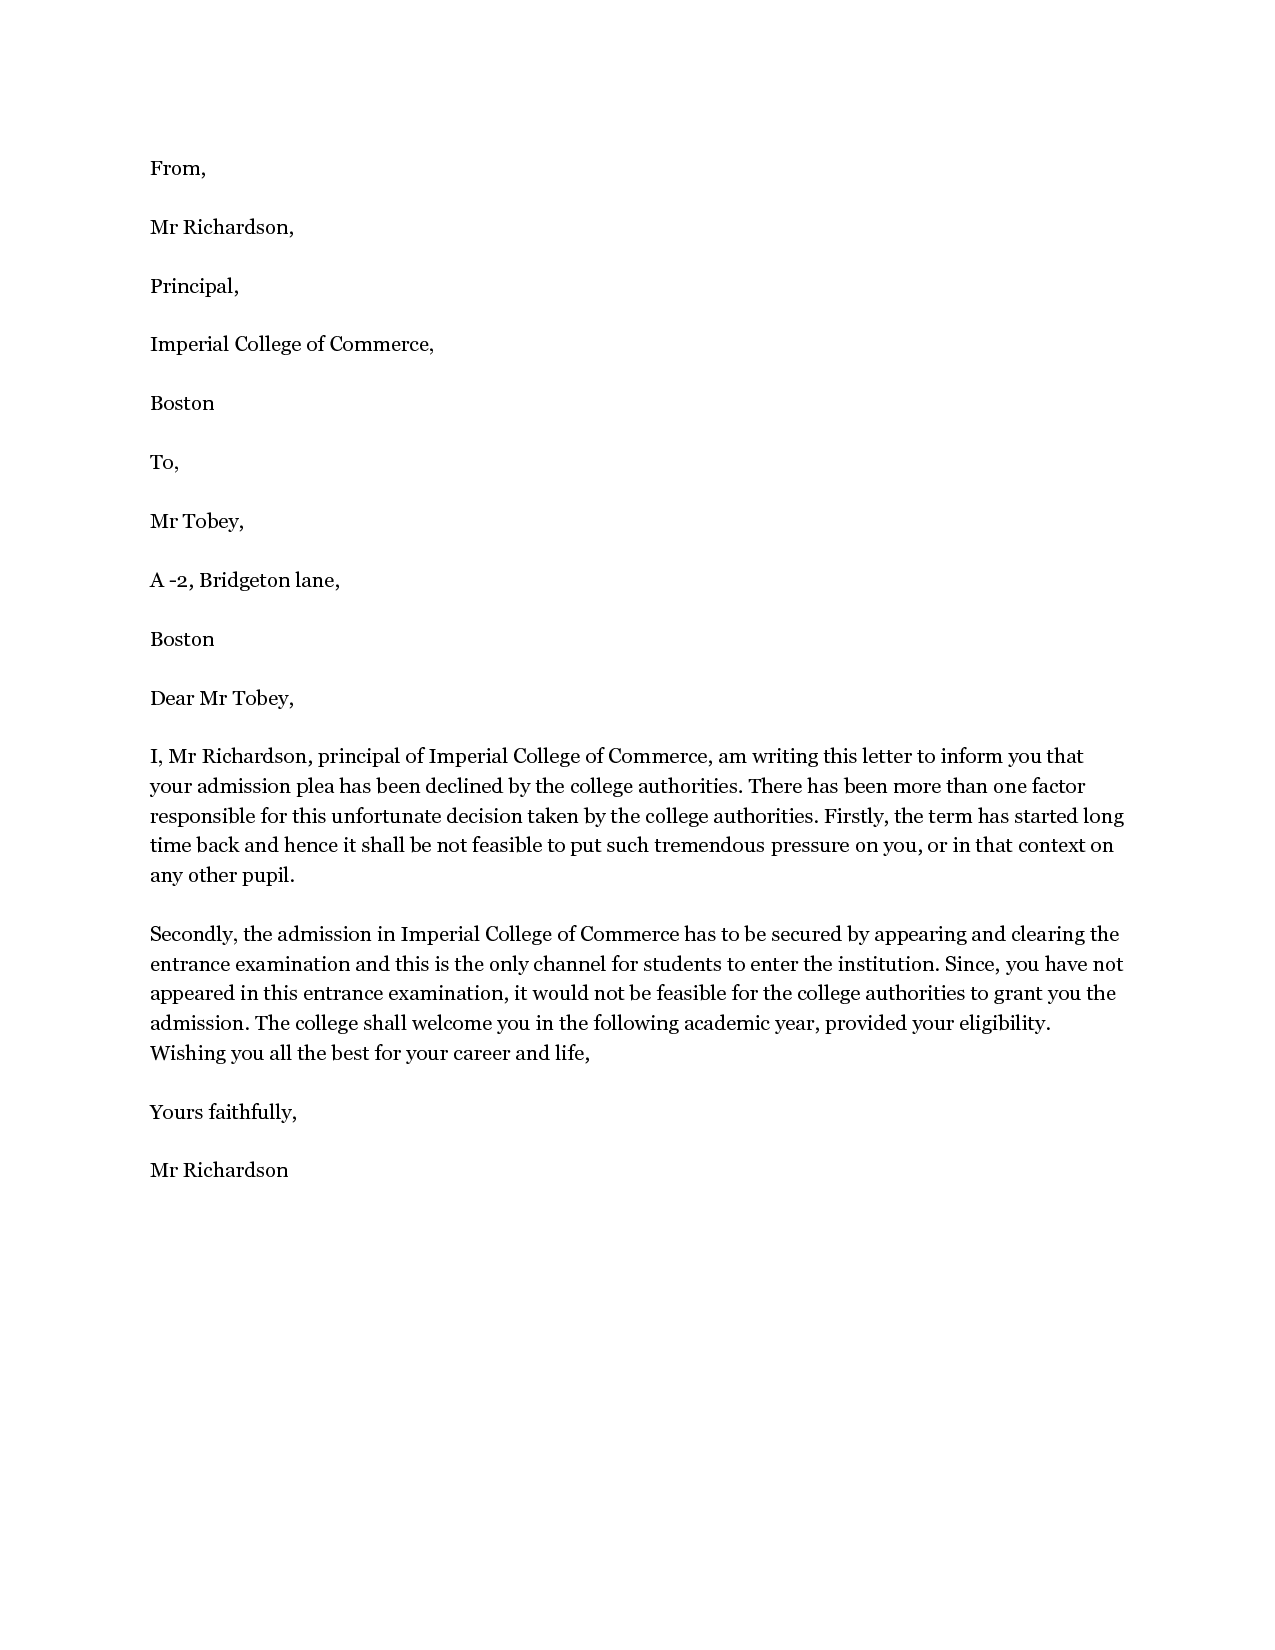 Decline admission letter the letter should be brief positive and college decline letter the letter should be brief positive and to the point here is a sample letter for declining college admission thecheapjerseys Image collections